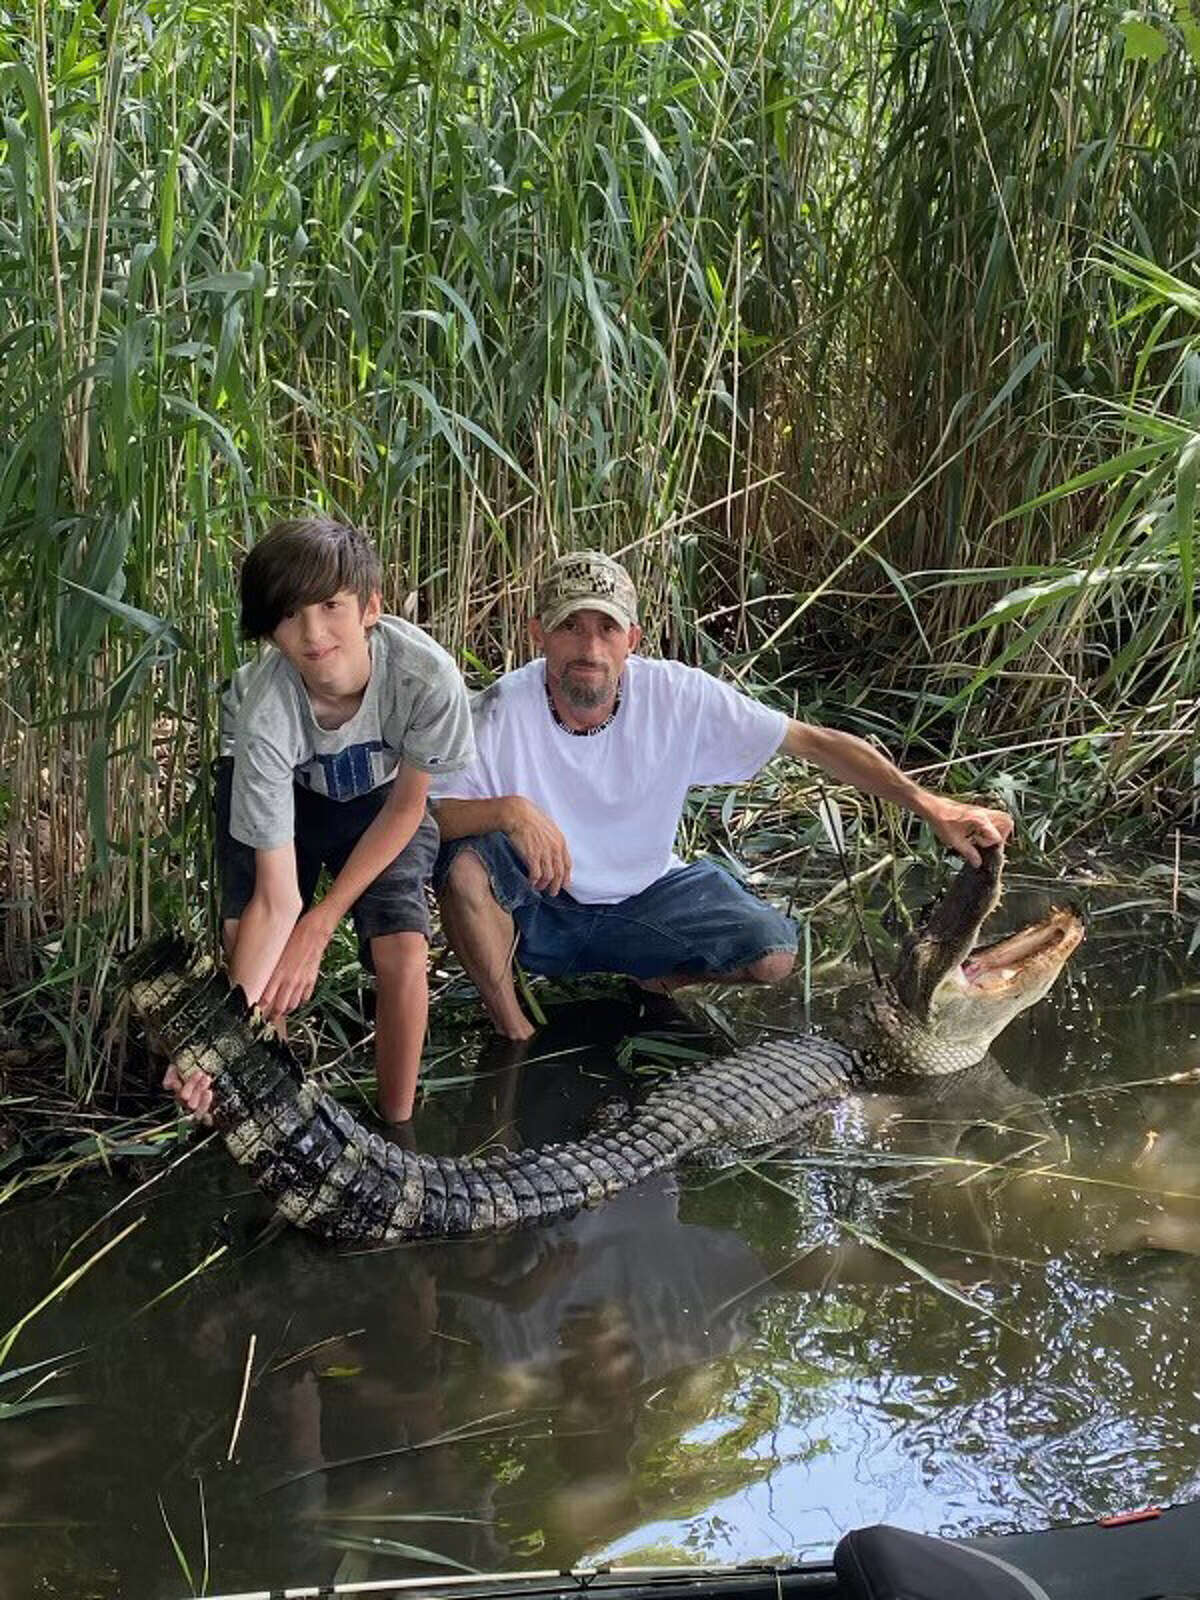 William Adams, right, of Lusby, Md., is shown with his son, Jake, as the pair hold an almost 8-foot-long alligator they found in a pond near their home off the Chesapeake Bay in Southern Maryland.